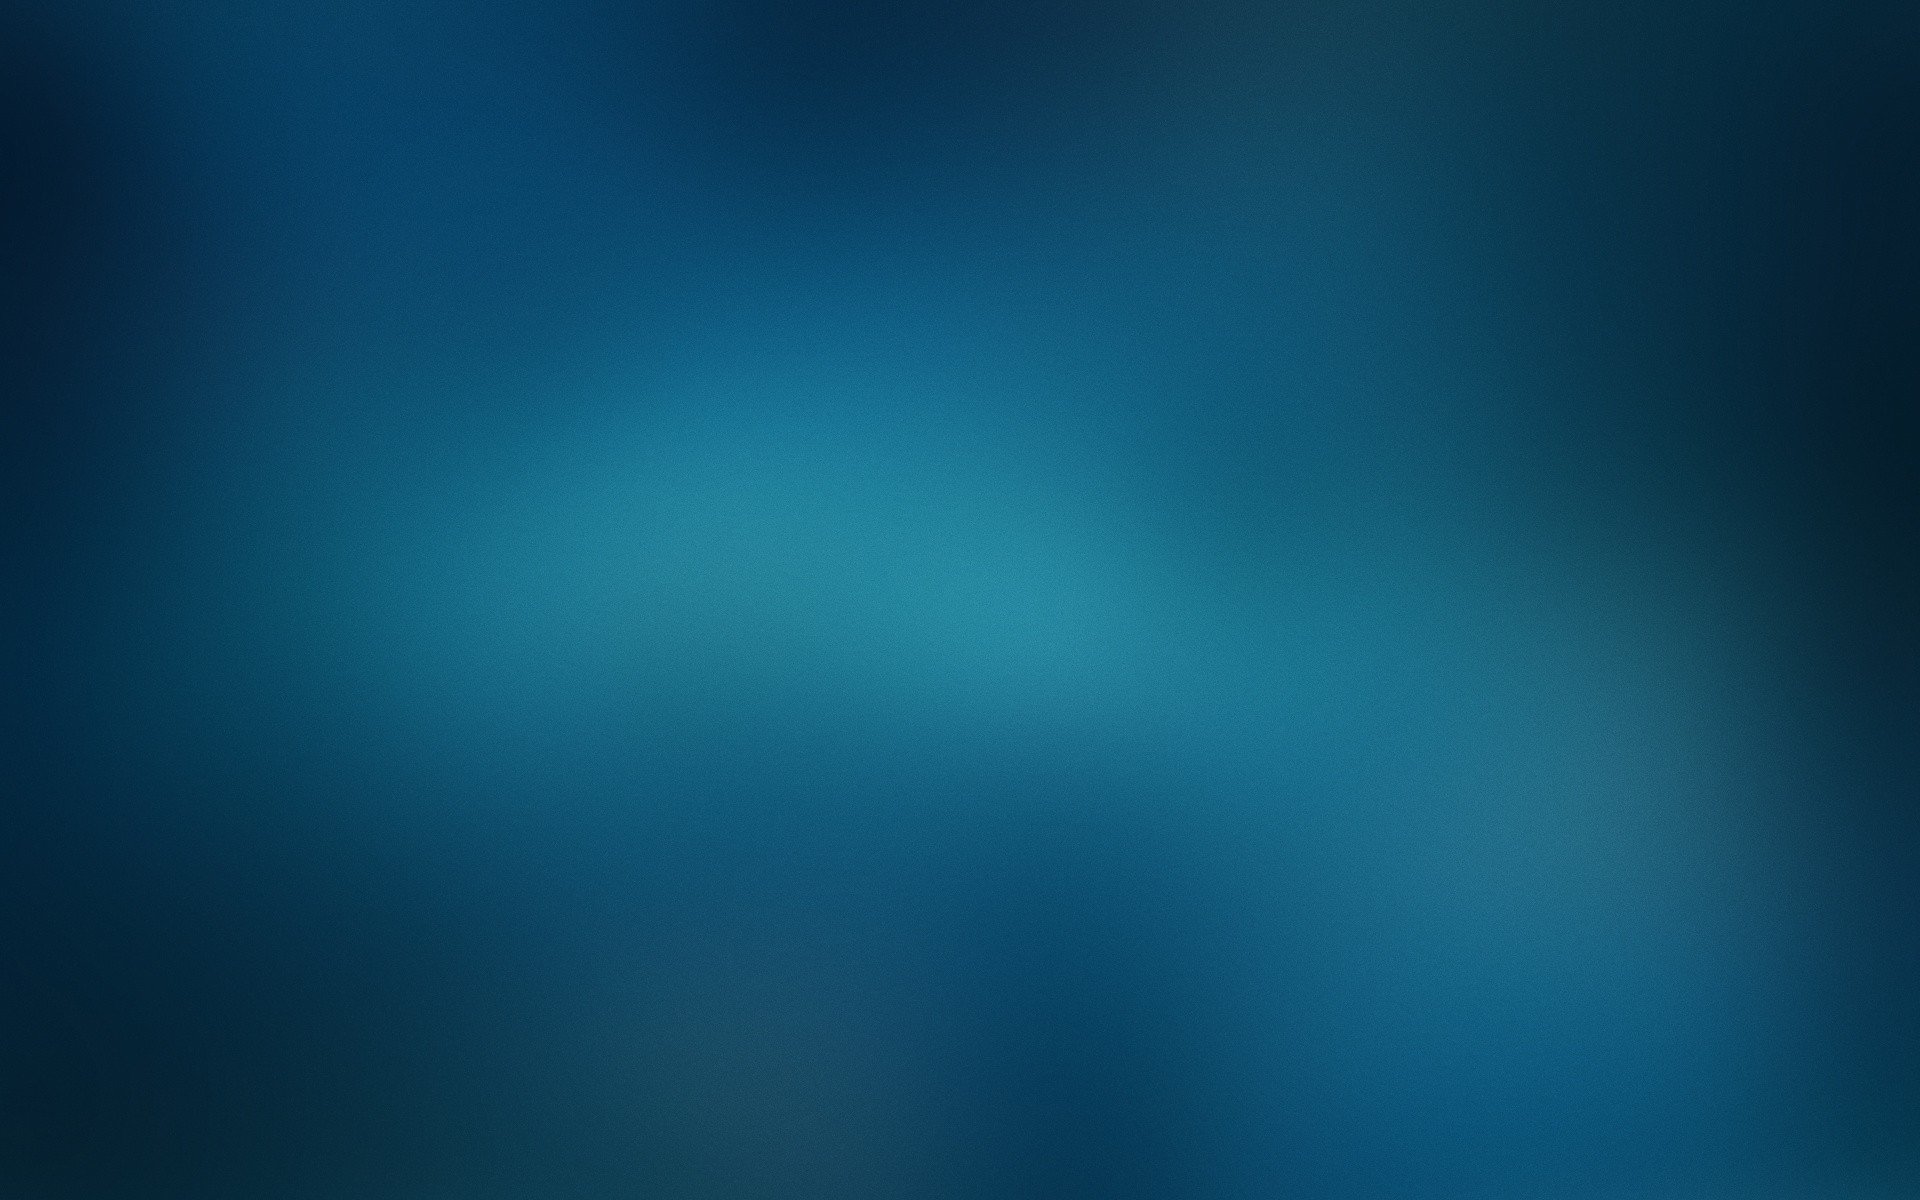 General 1920x1200 blue gradient simple wallhaven simple background digital art texture artwork